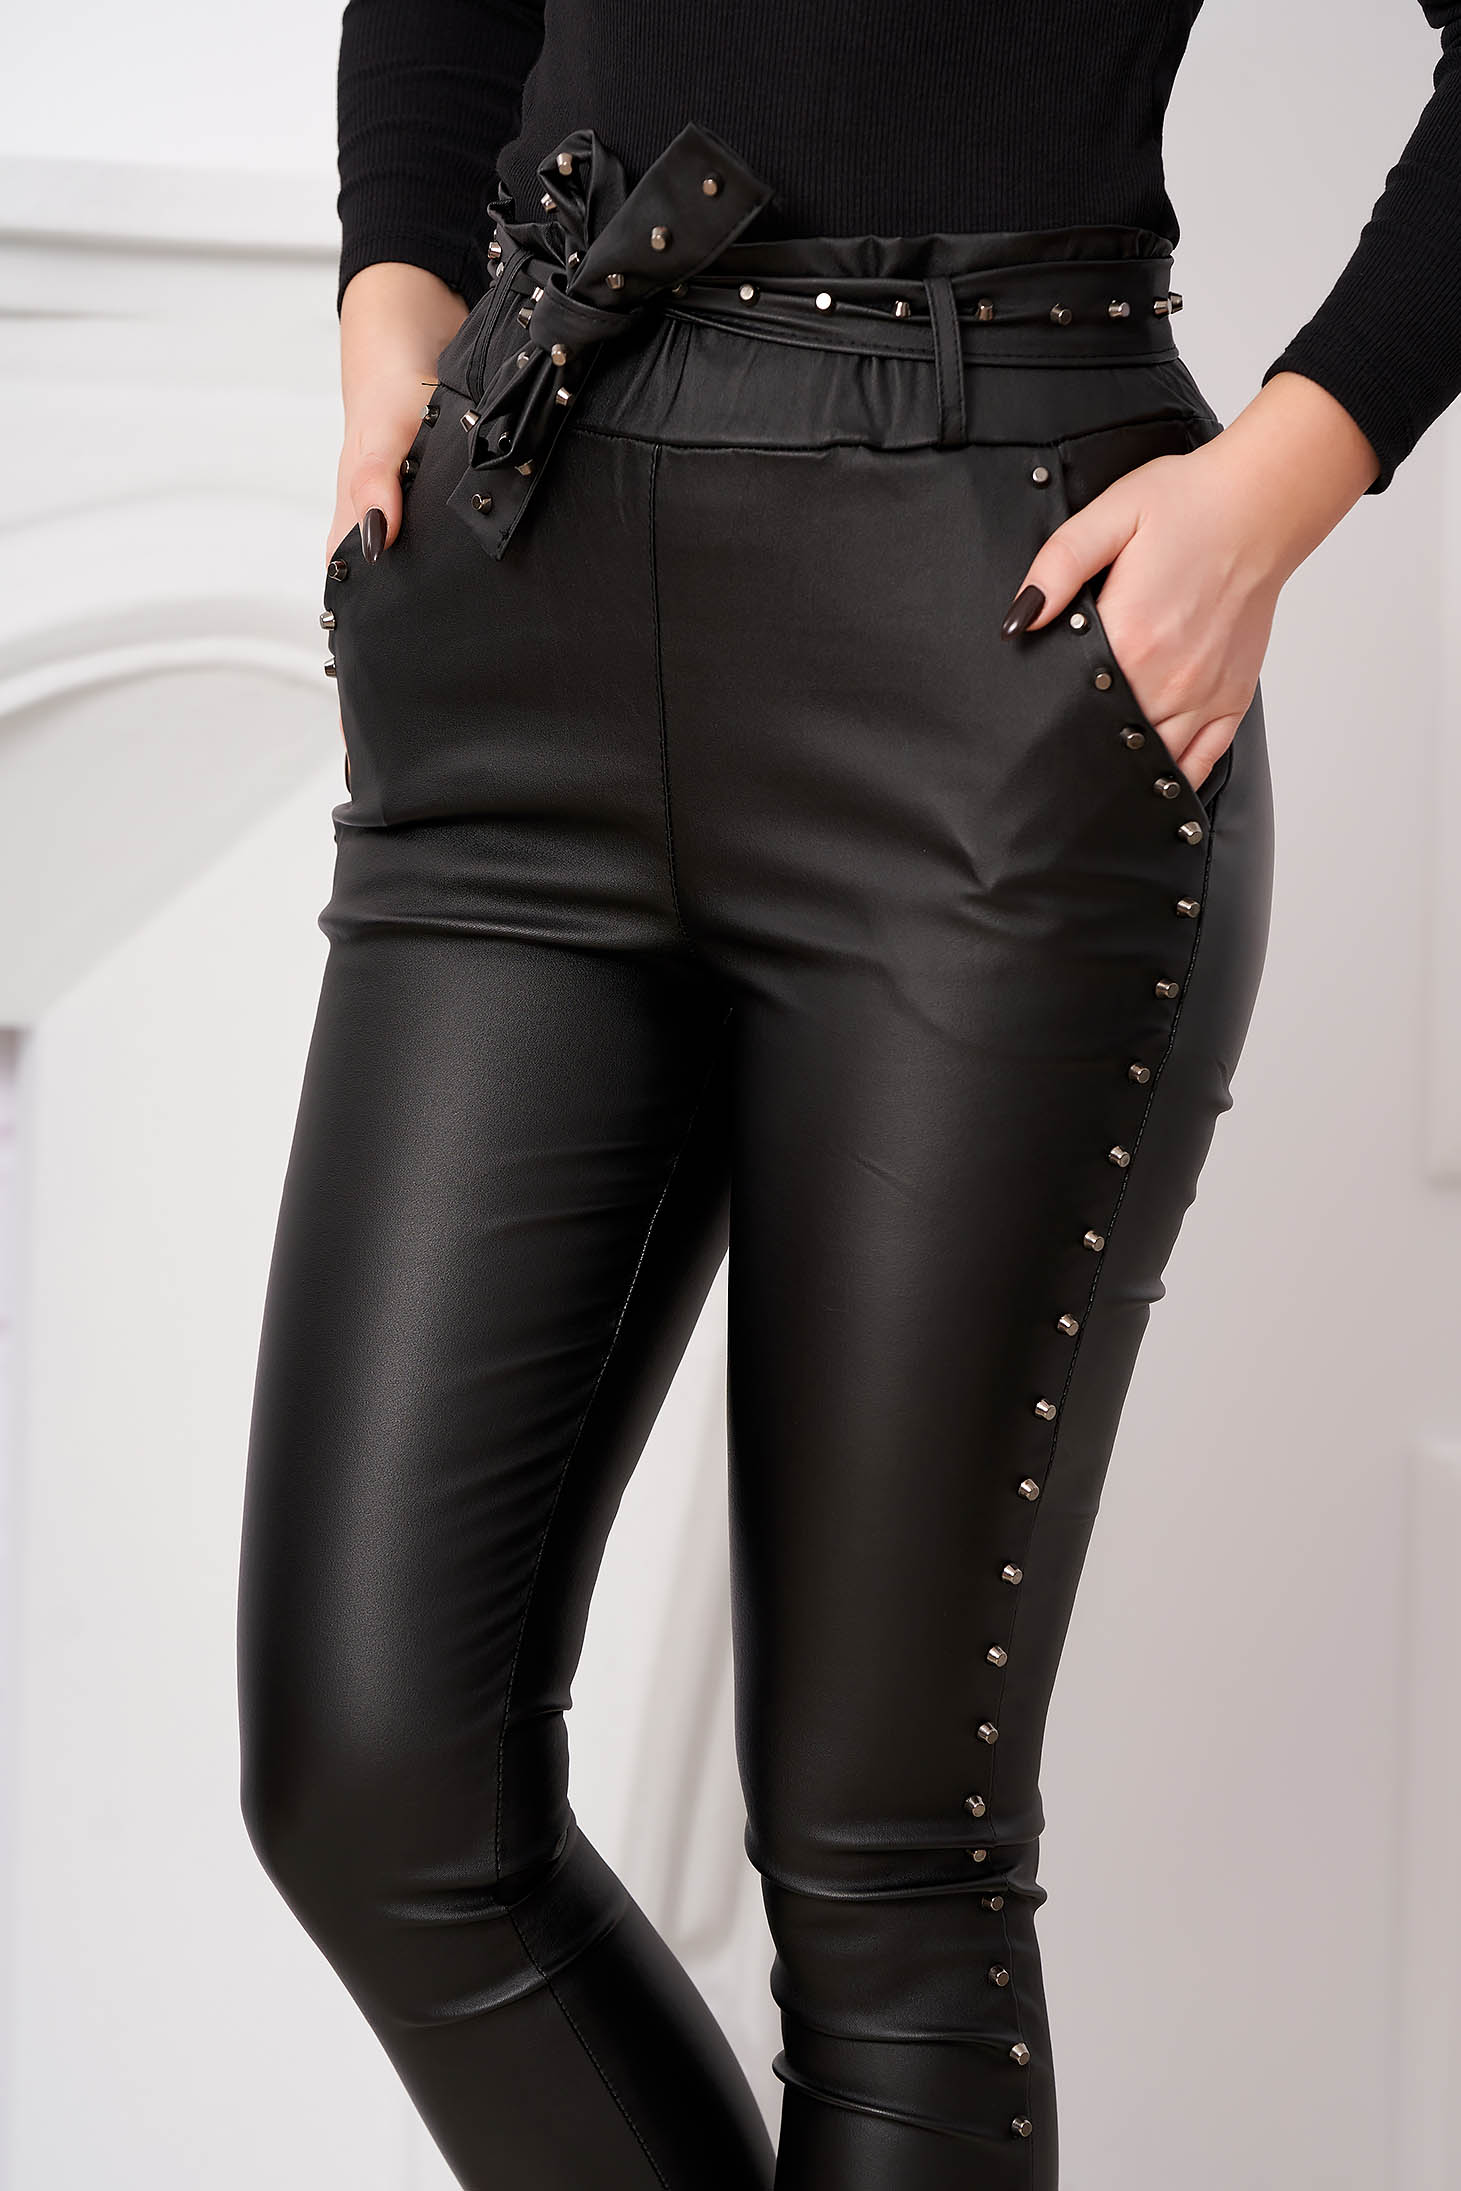 Black trousers with metallic spikes from ecological leather high waisted with tented cut